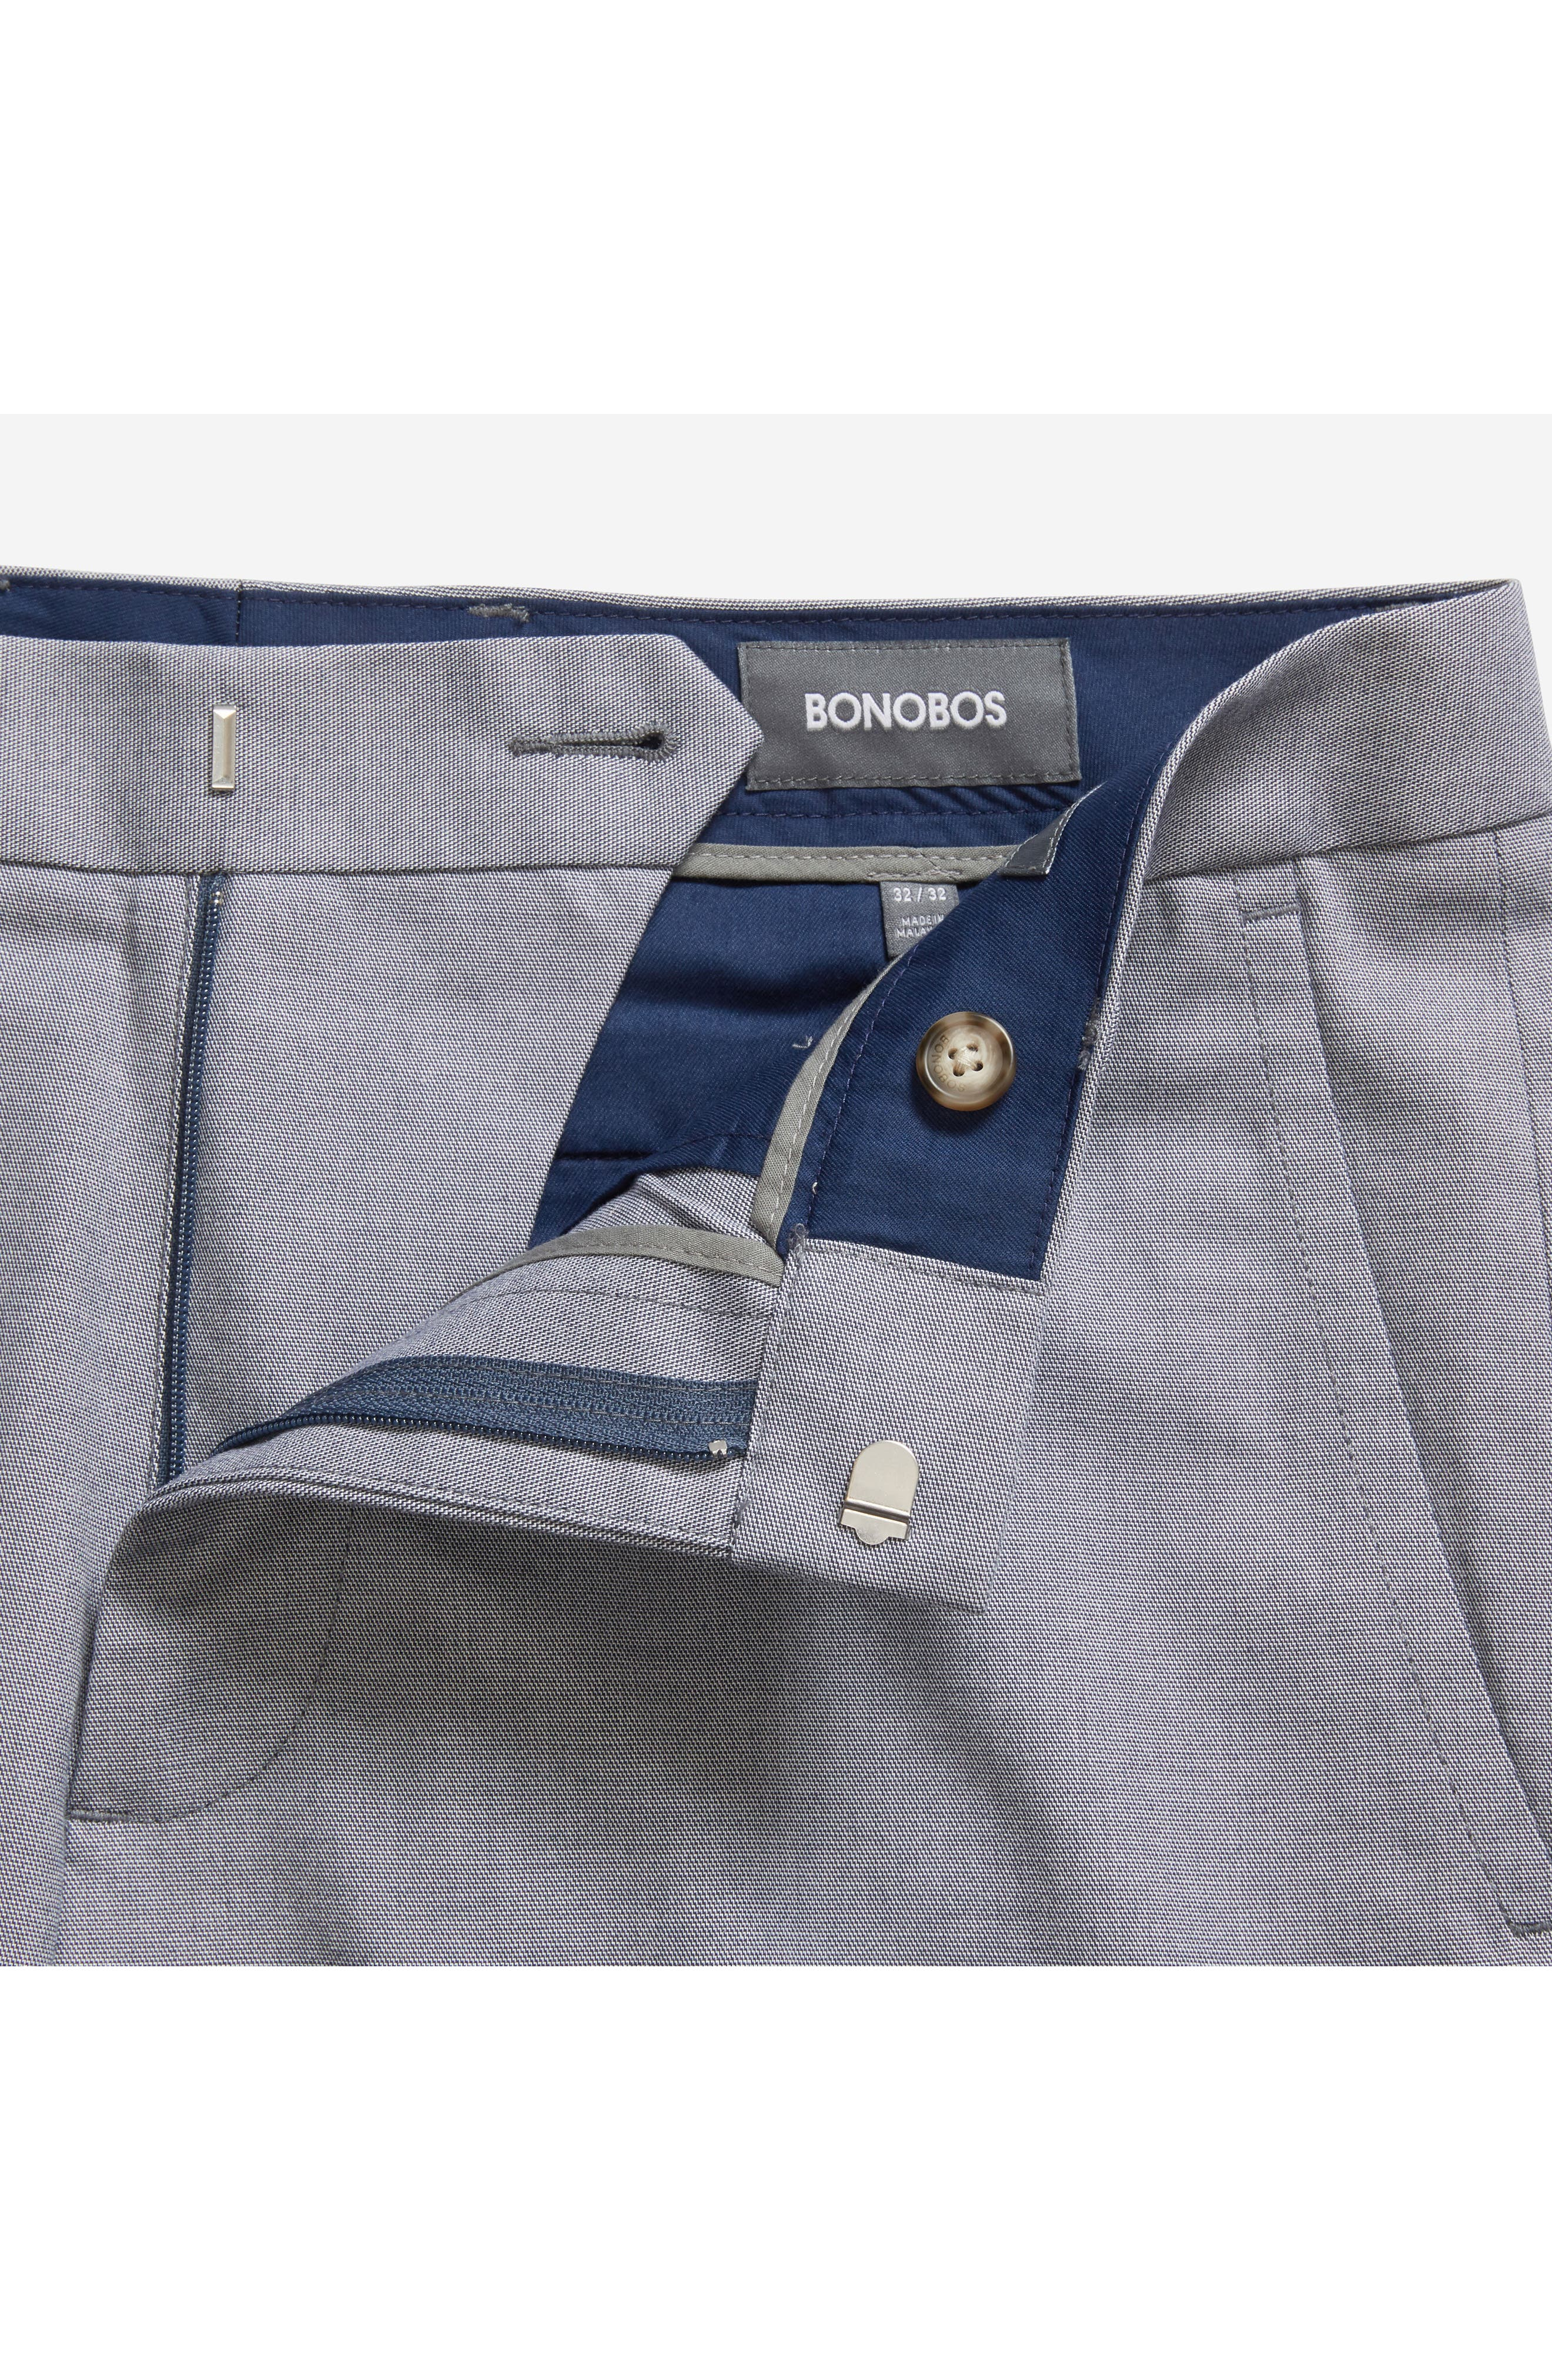 Weekday Warrior Flat Front Stretch Cotton Pants,                             Alternate thumbnail 4, color,                             Navy